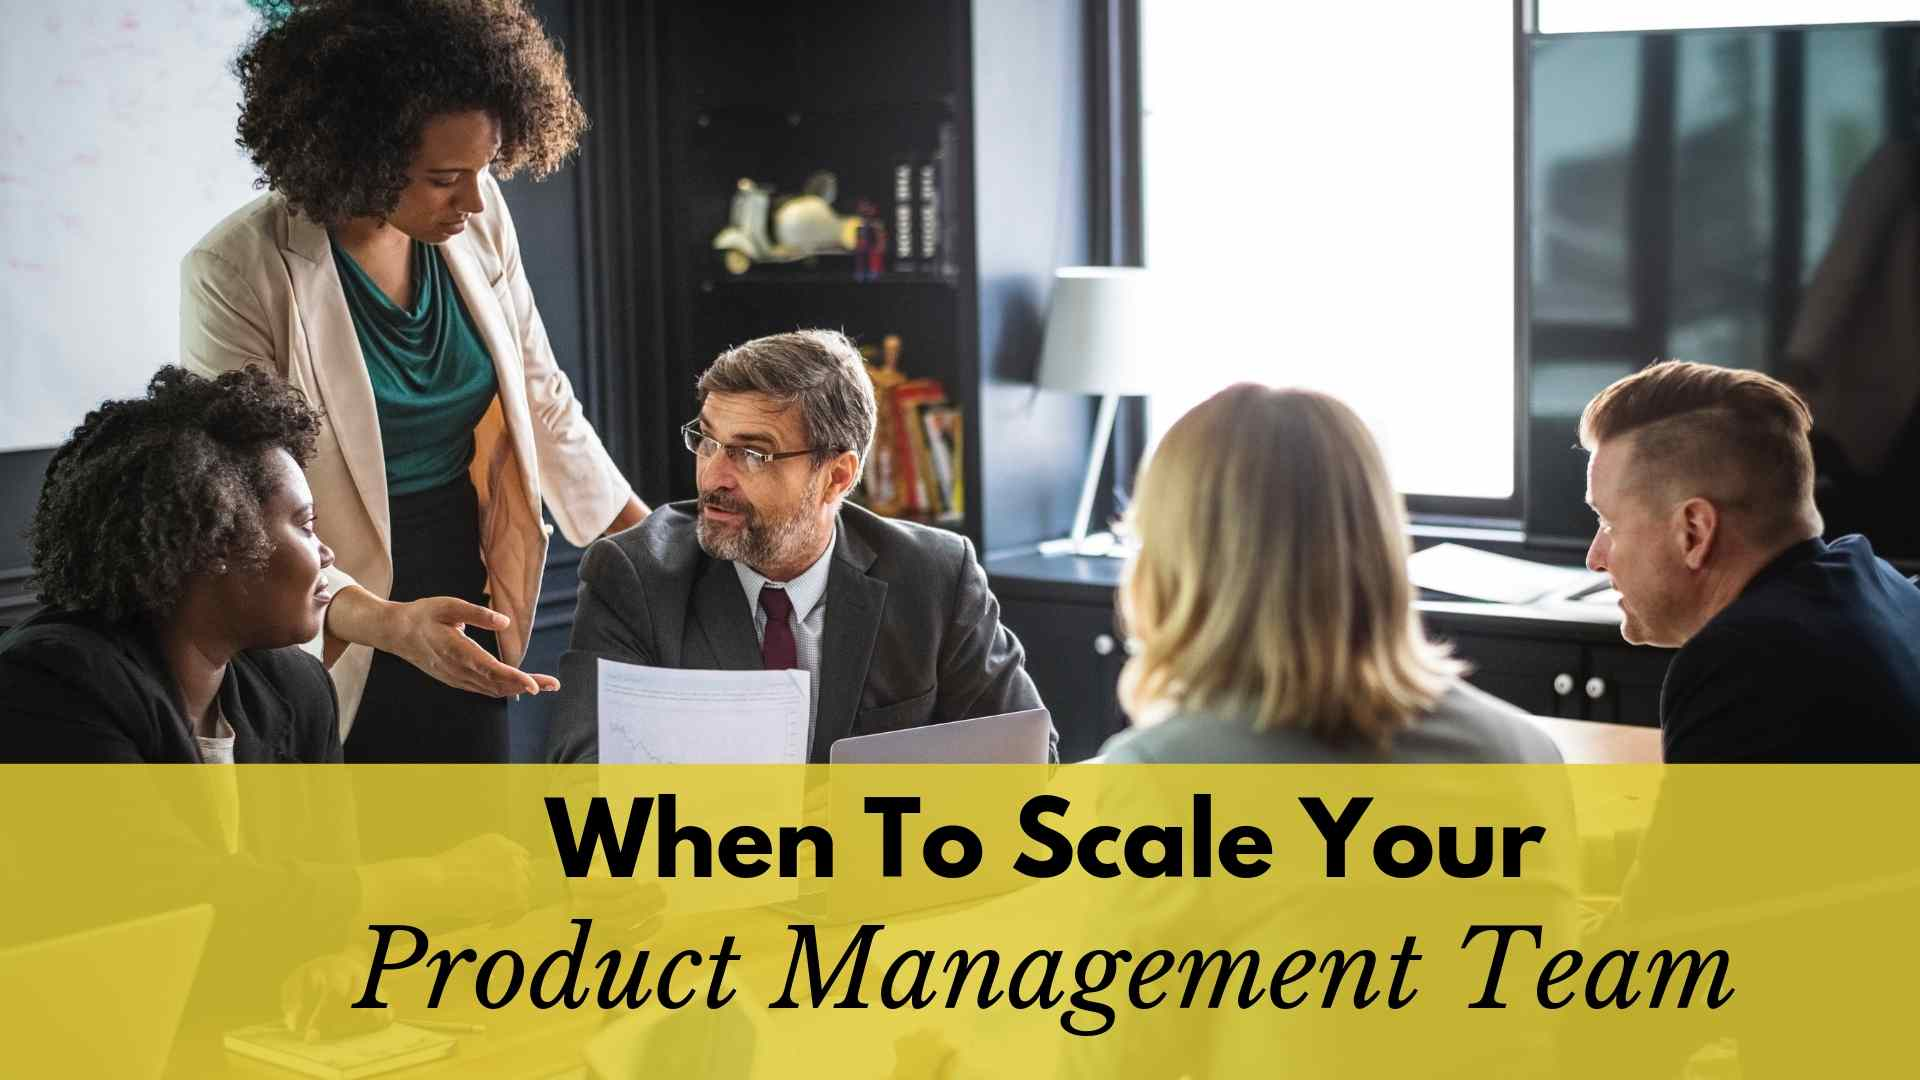 When To Scale Your Product Management Team